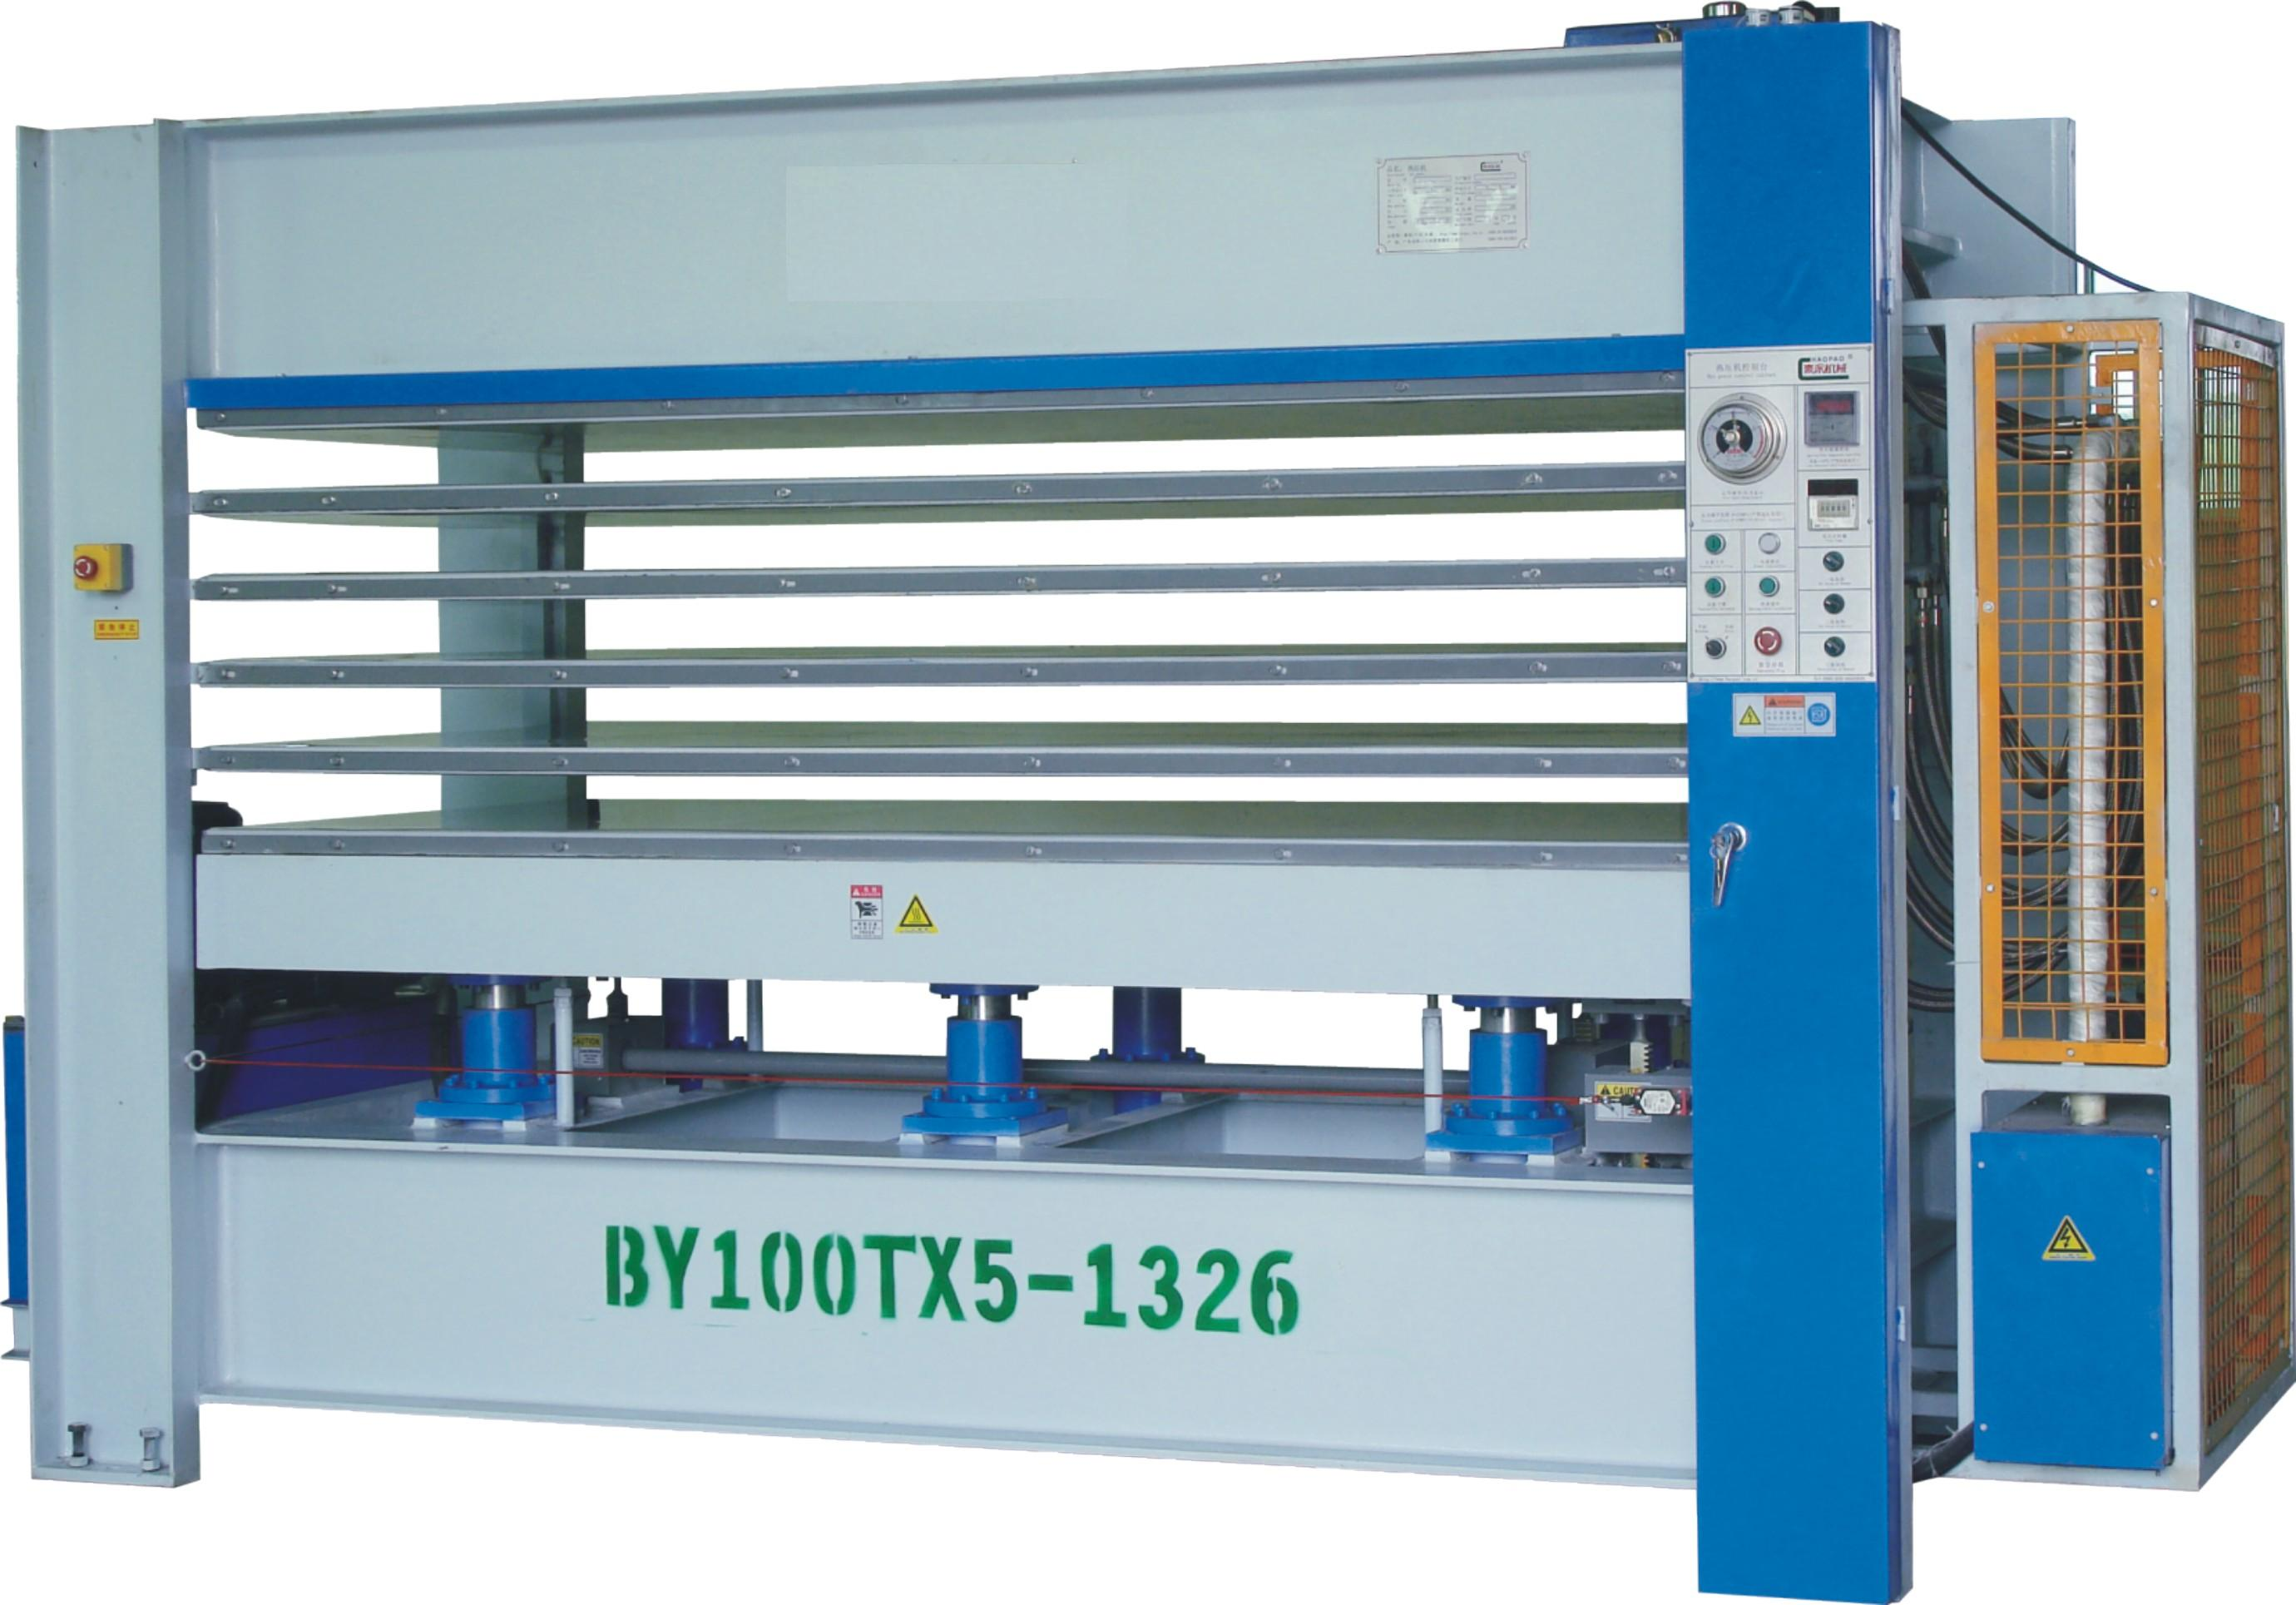 Hot press of 100ton with 5 layers